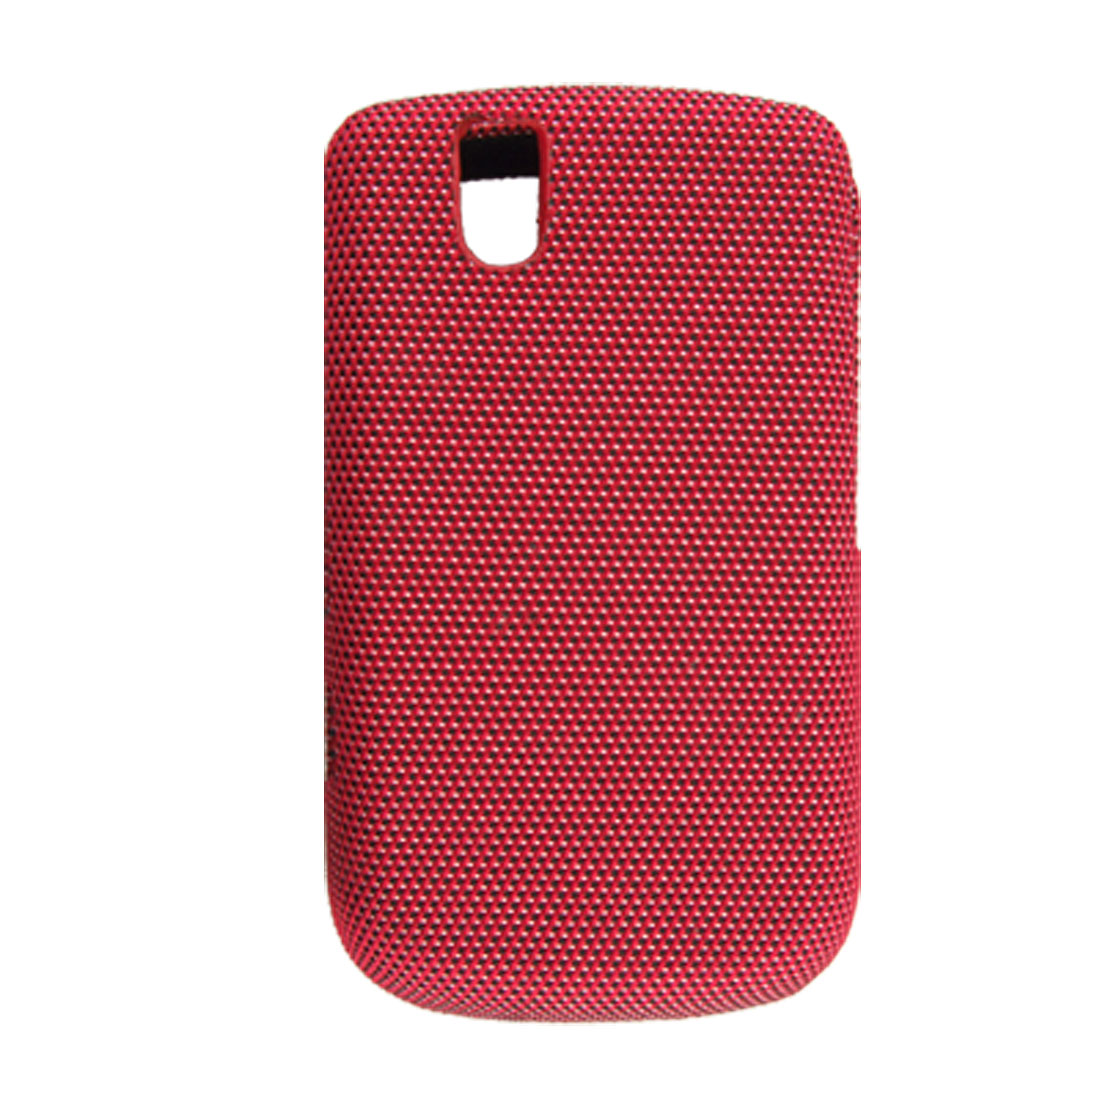 Red Nylon Covered Plastic Case Shell for Blackberry 9630